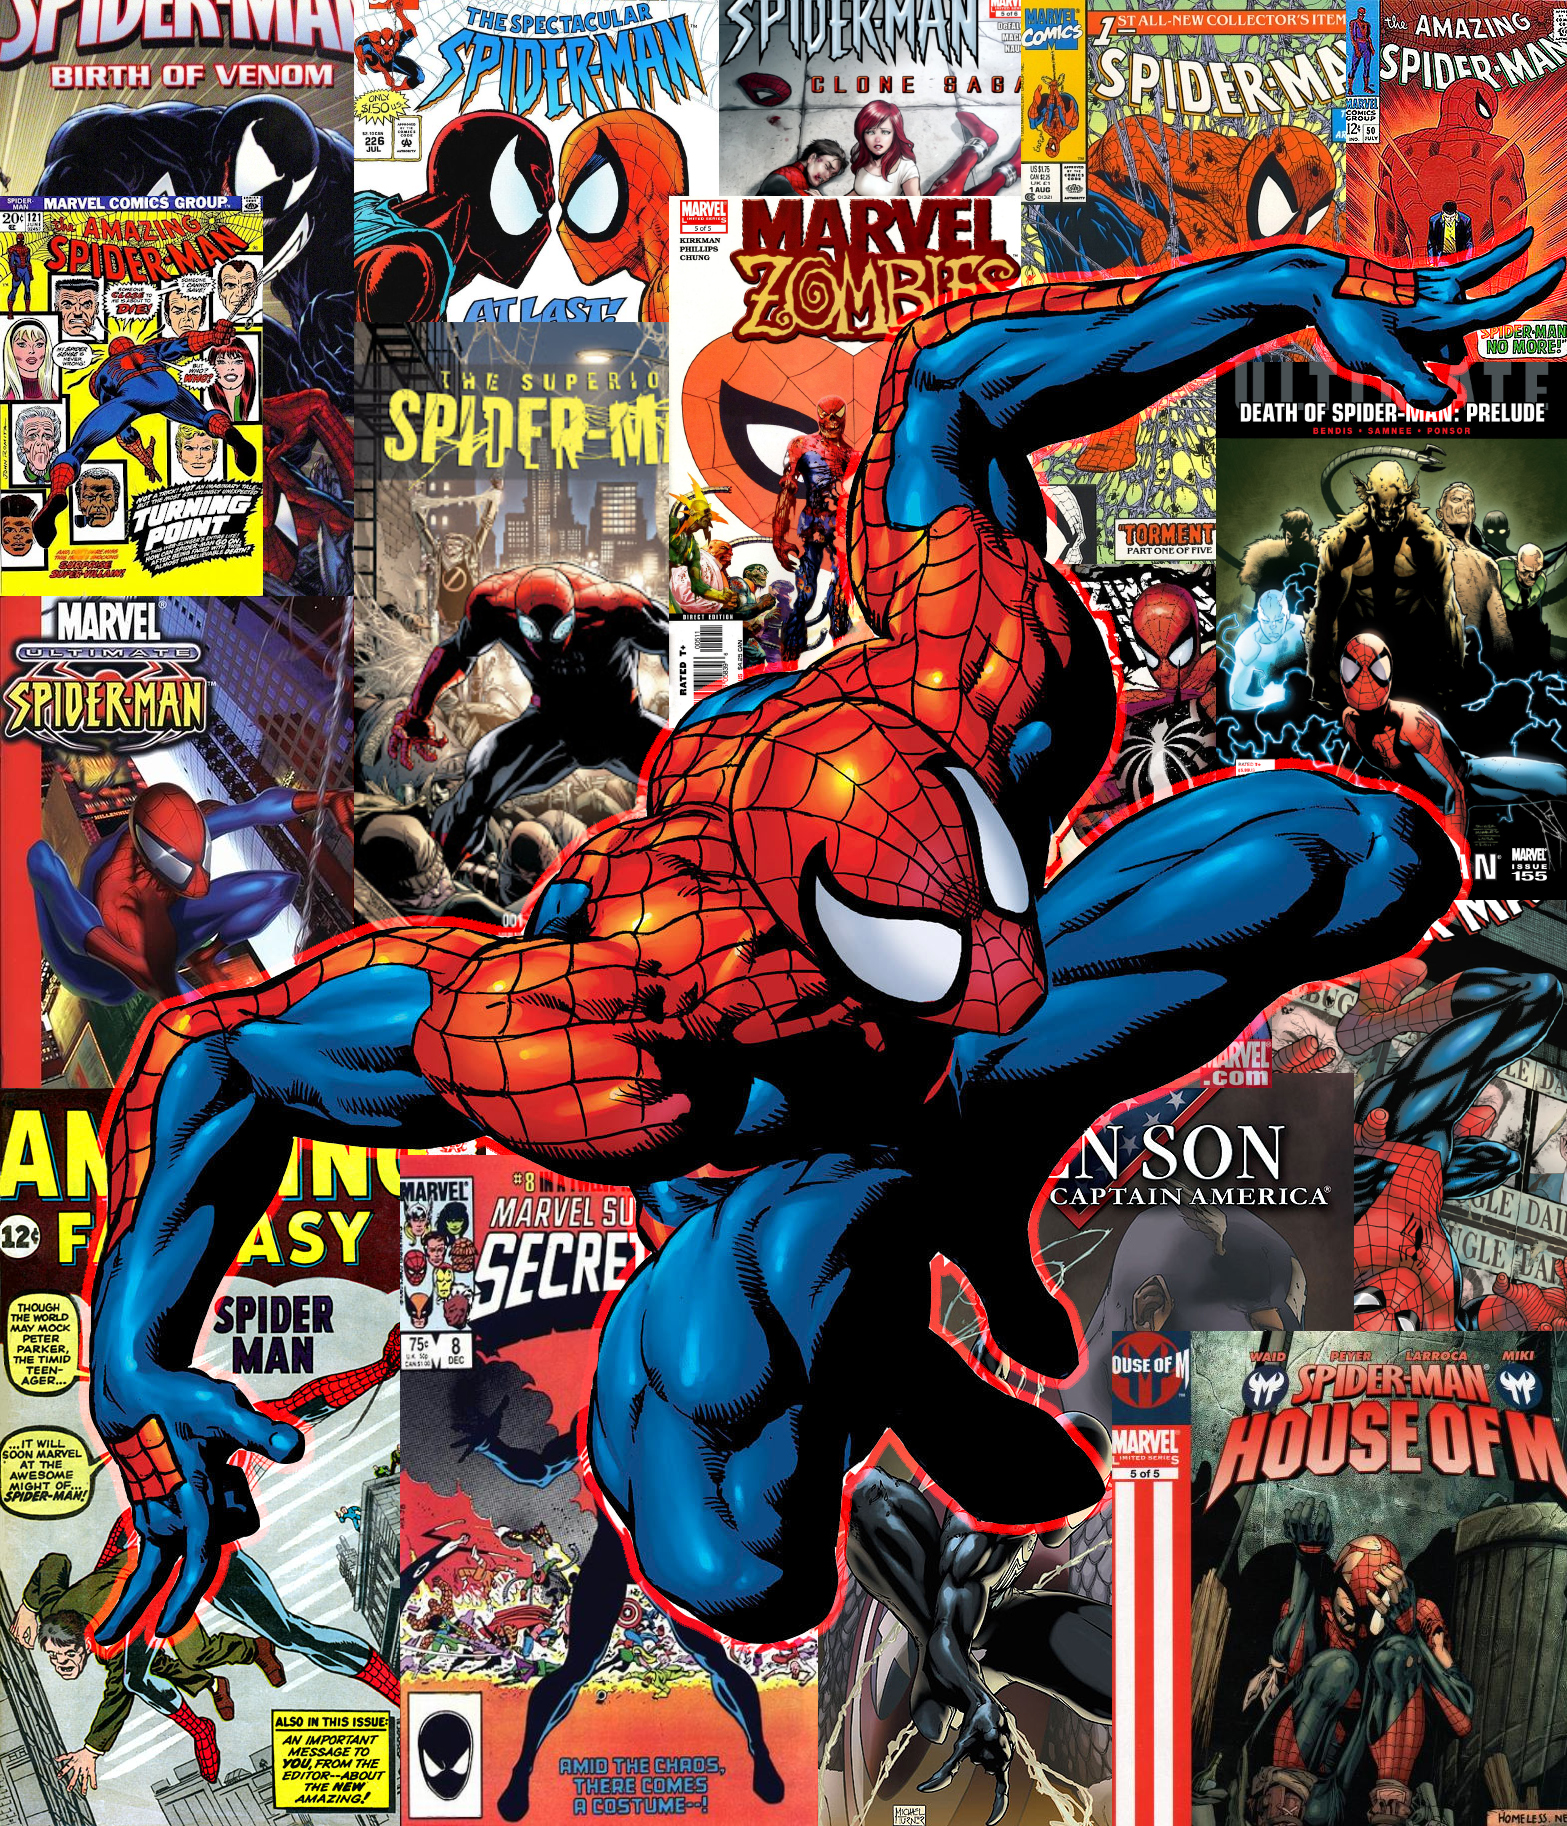 Comic Book Cover Art : Spider man comicbook cover collection wallpaper by